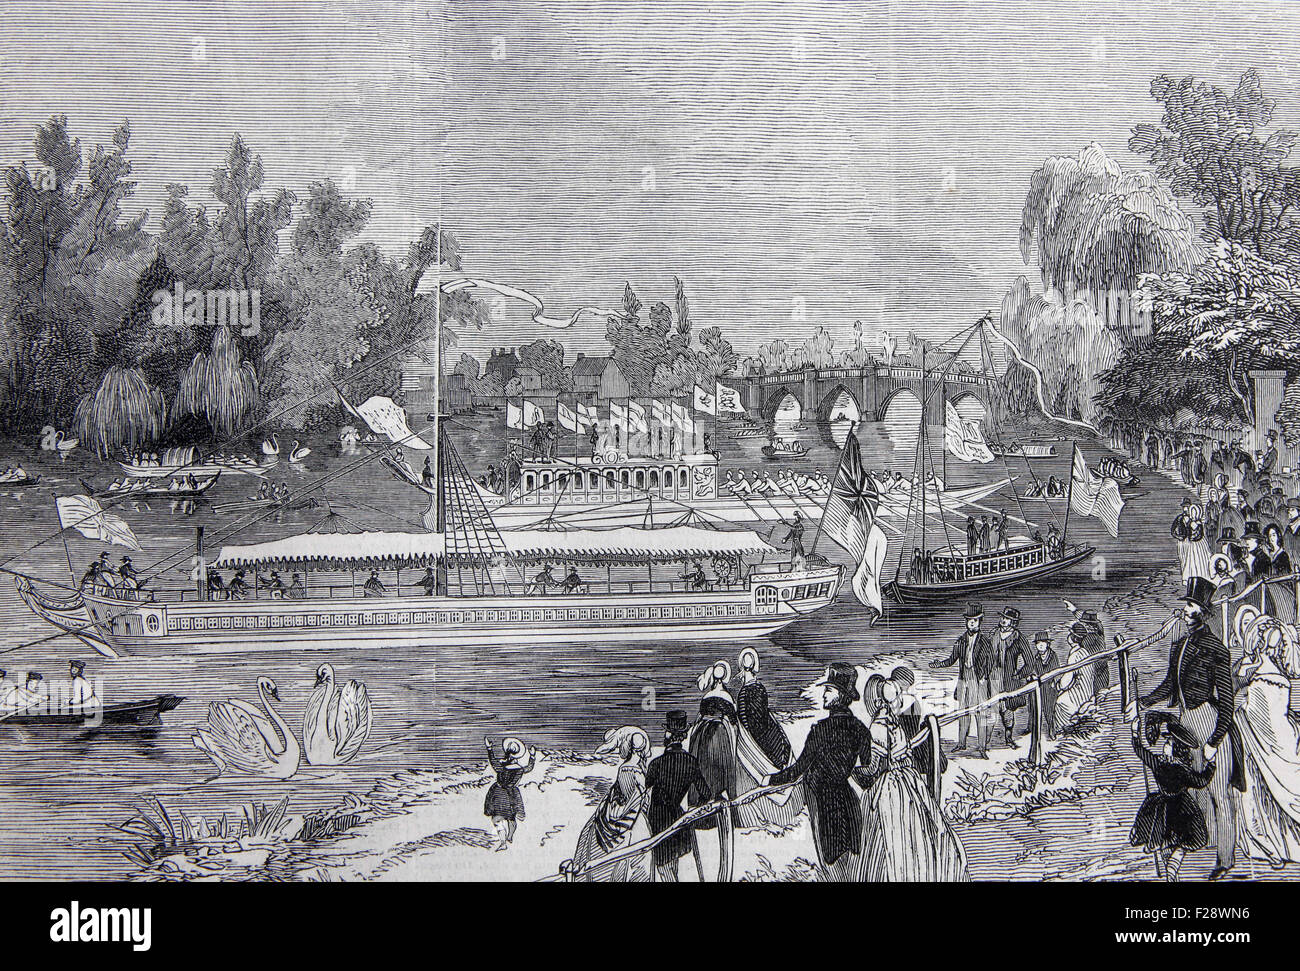 Swan-Upping on the River Thames, from Brentford Ait, Illustrated London News July 1844; Black and White Illustration; - Stock Image